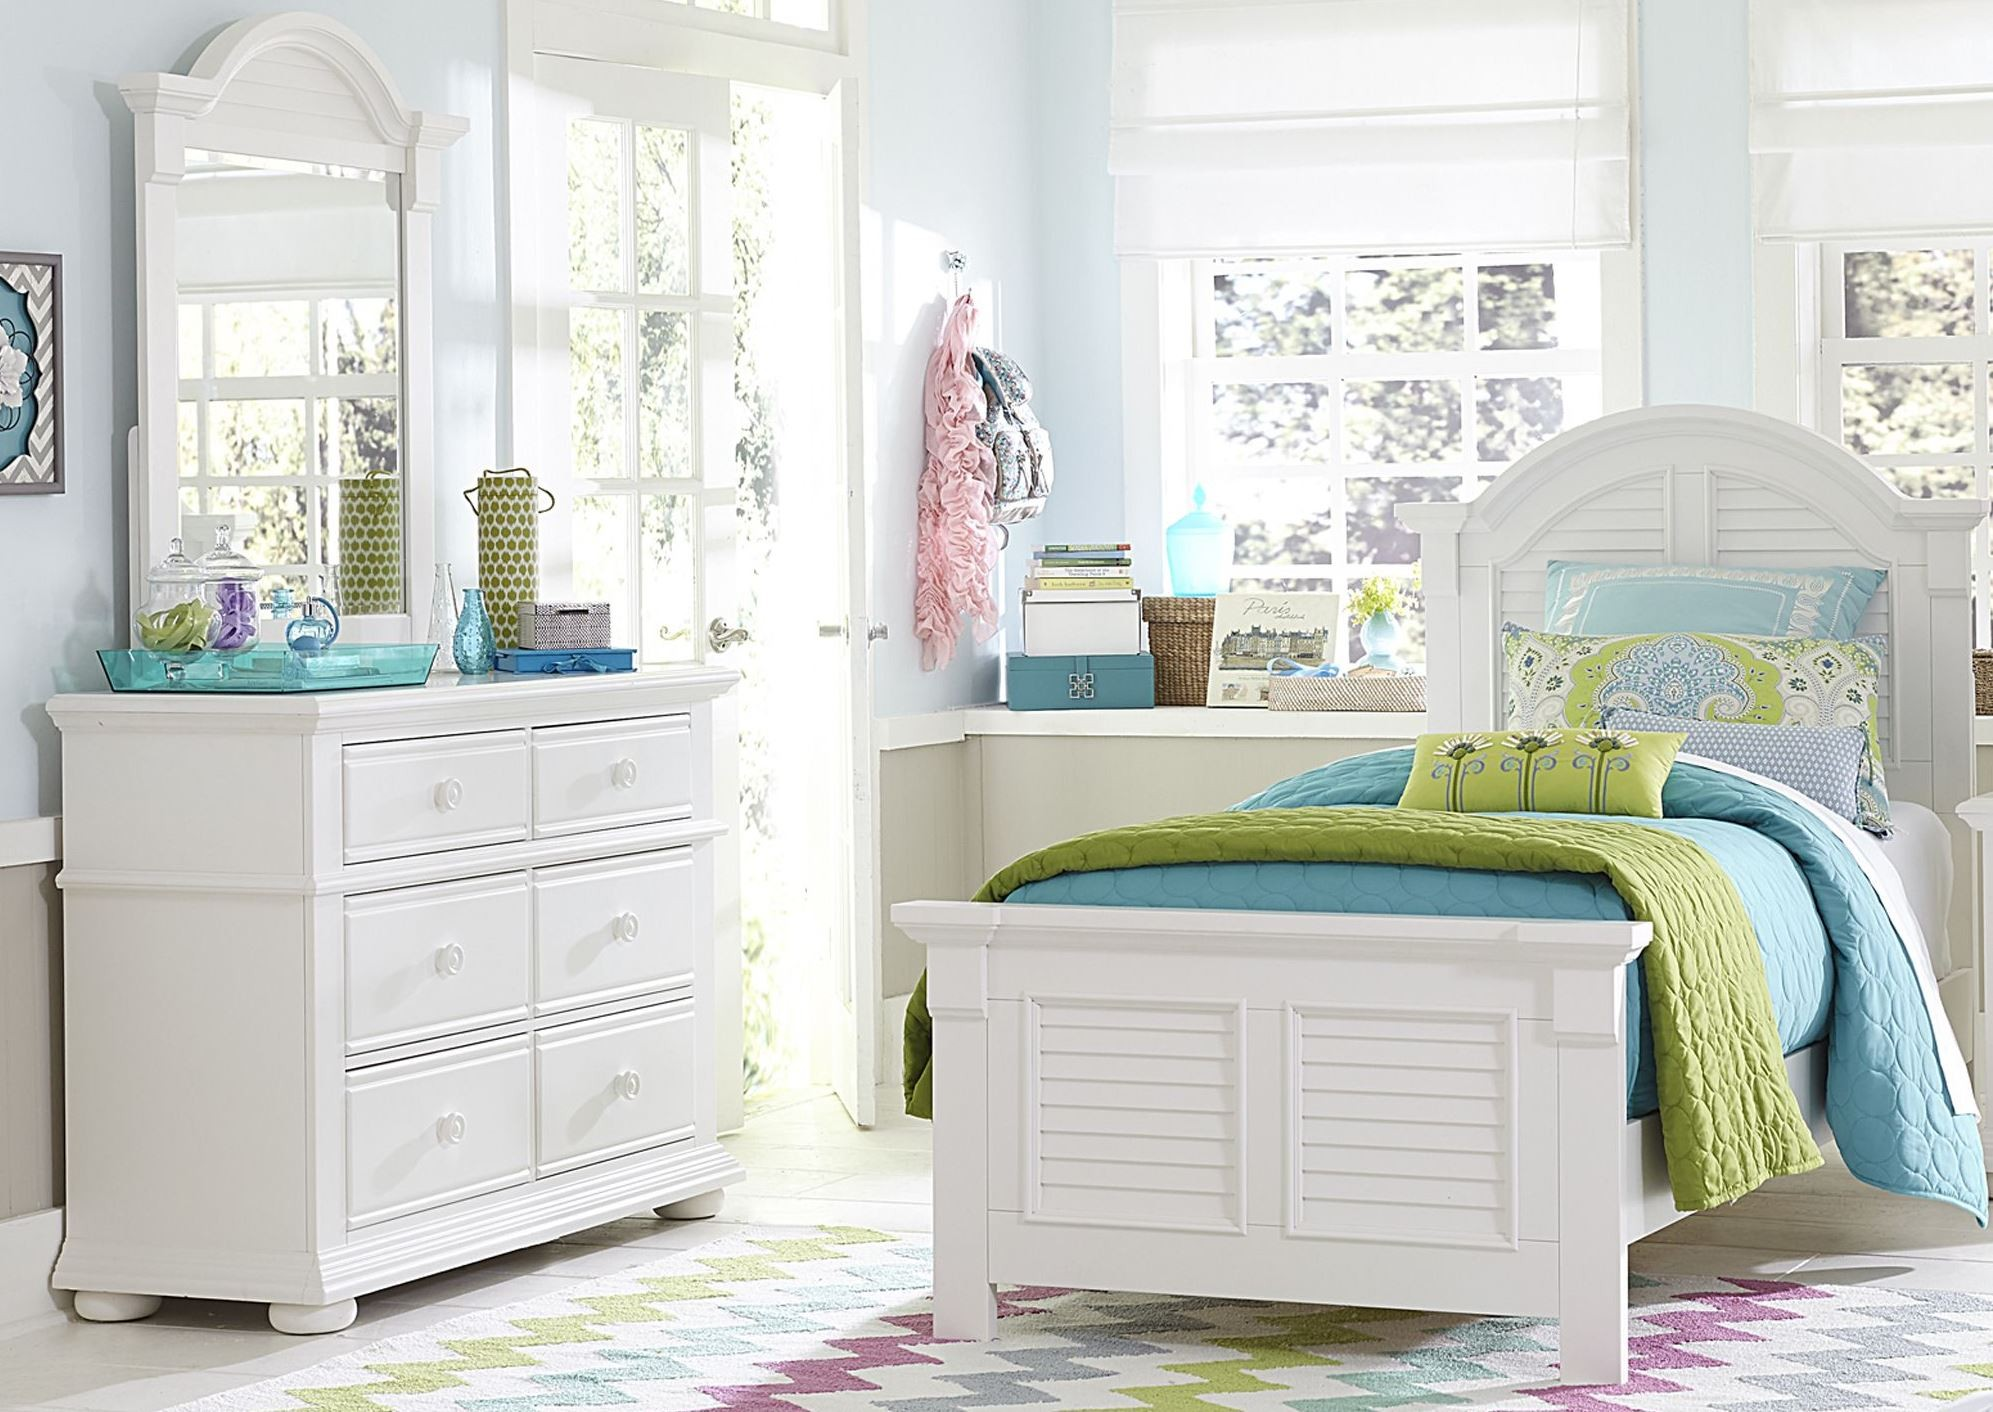 Summer House Oyster White 2 Drawer Nightstand 607 Br60 Liberty